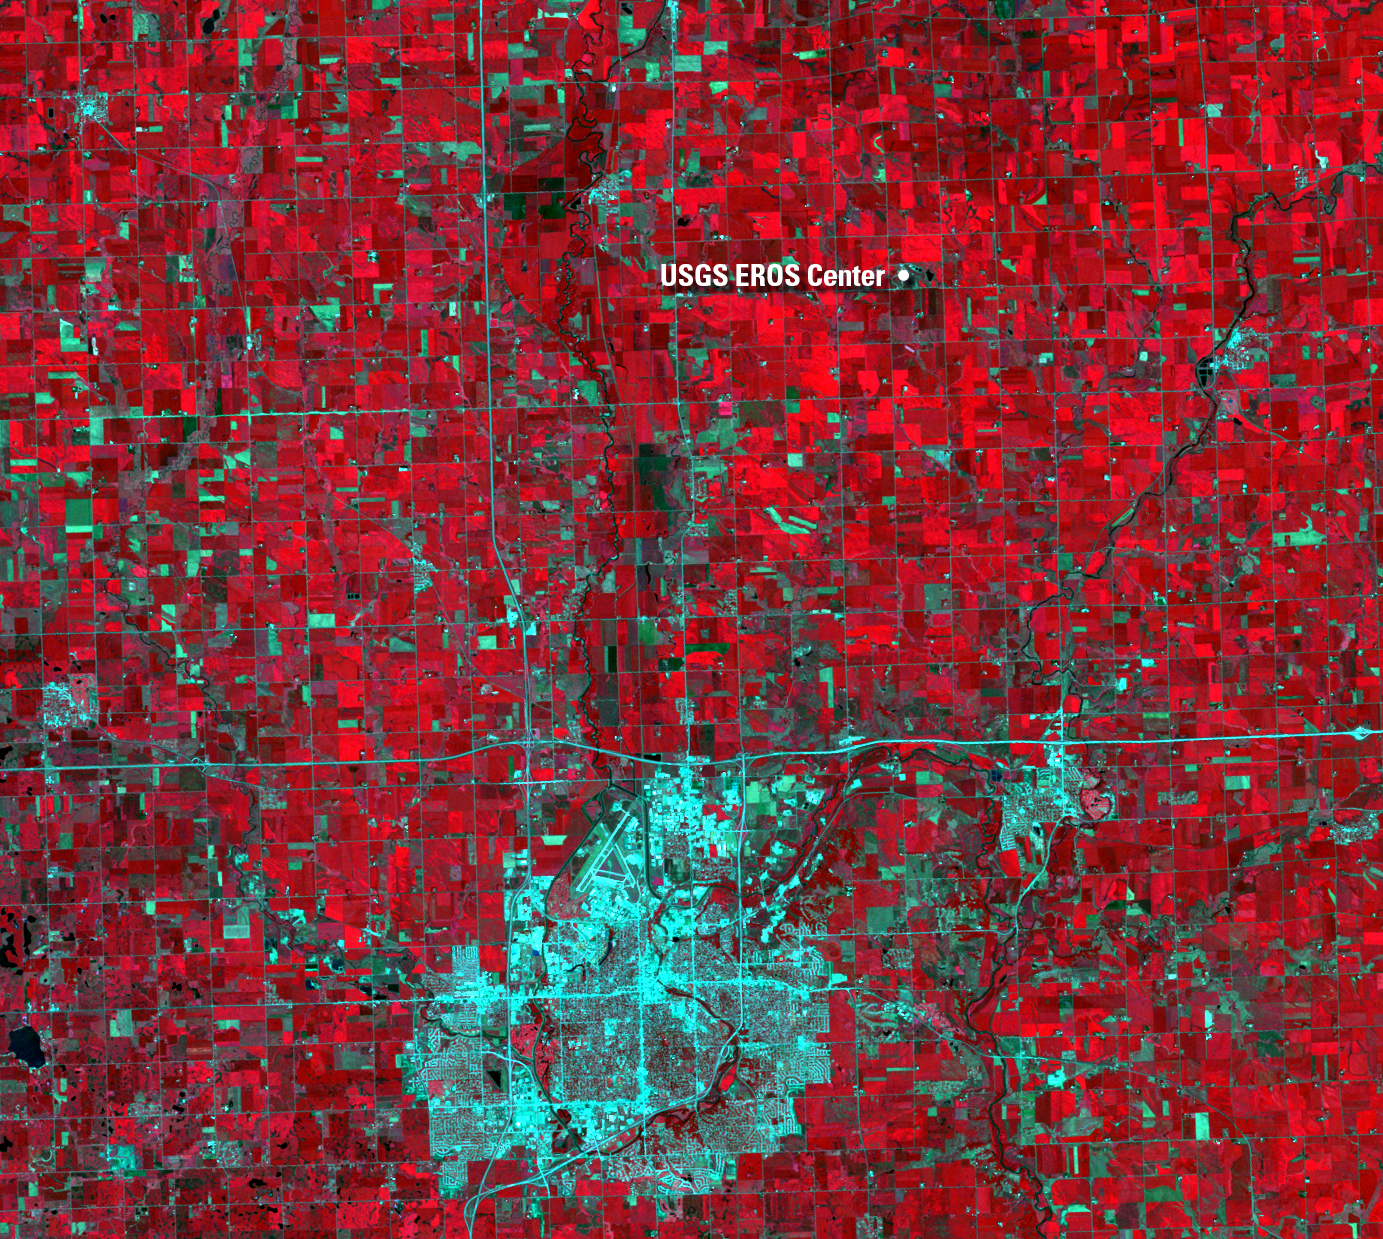 July 19, 1998, Landsat 5 (path/row 29/30) — One year after the hailstorm, near Sioux Falls, SD, USA